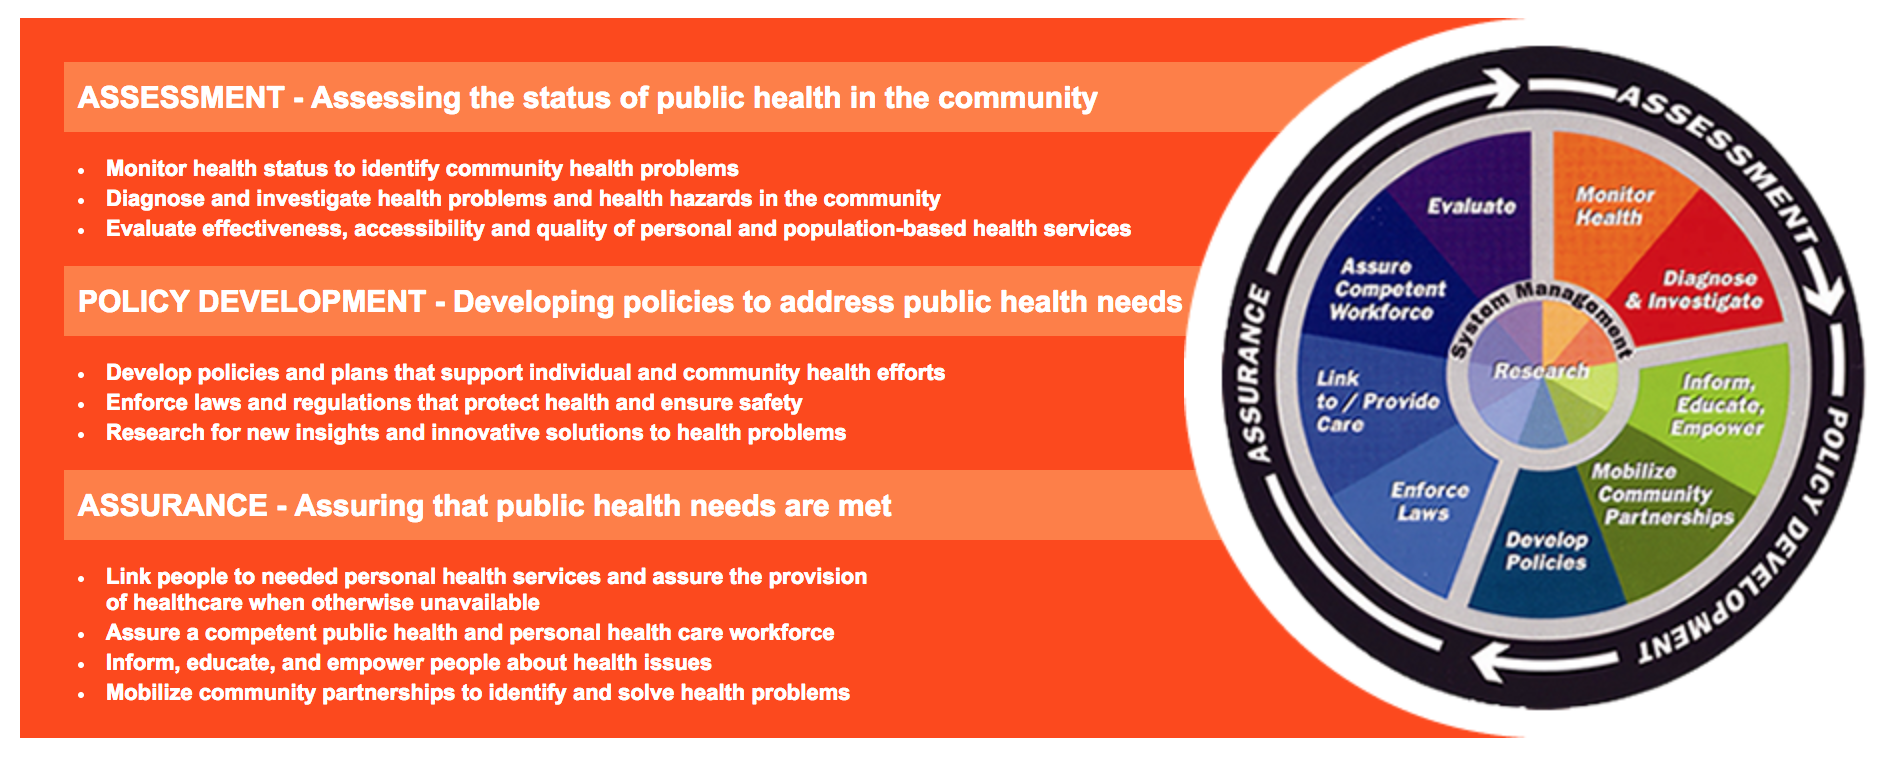 Public Health Information | INALBOH